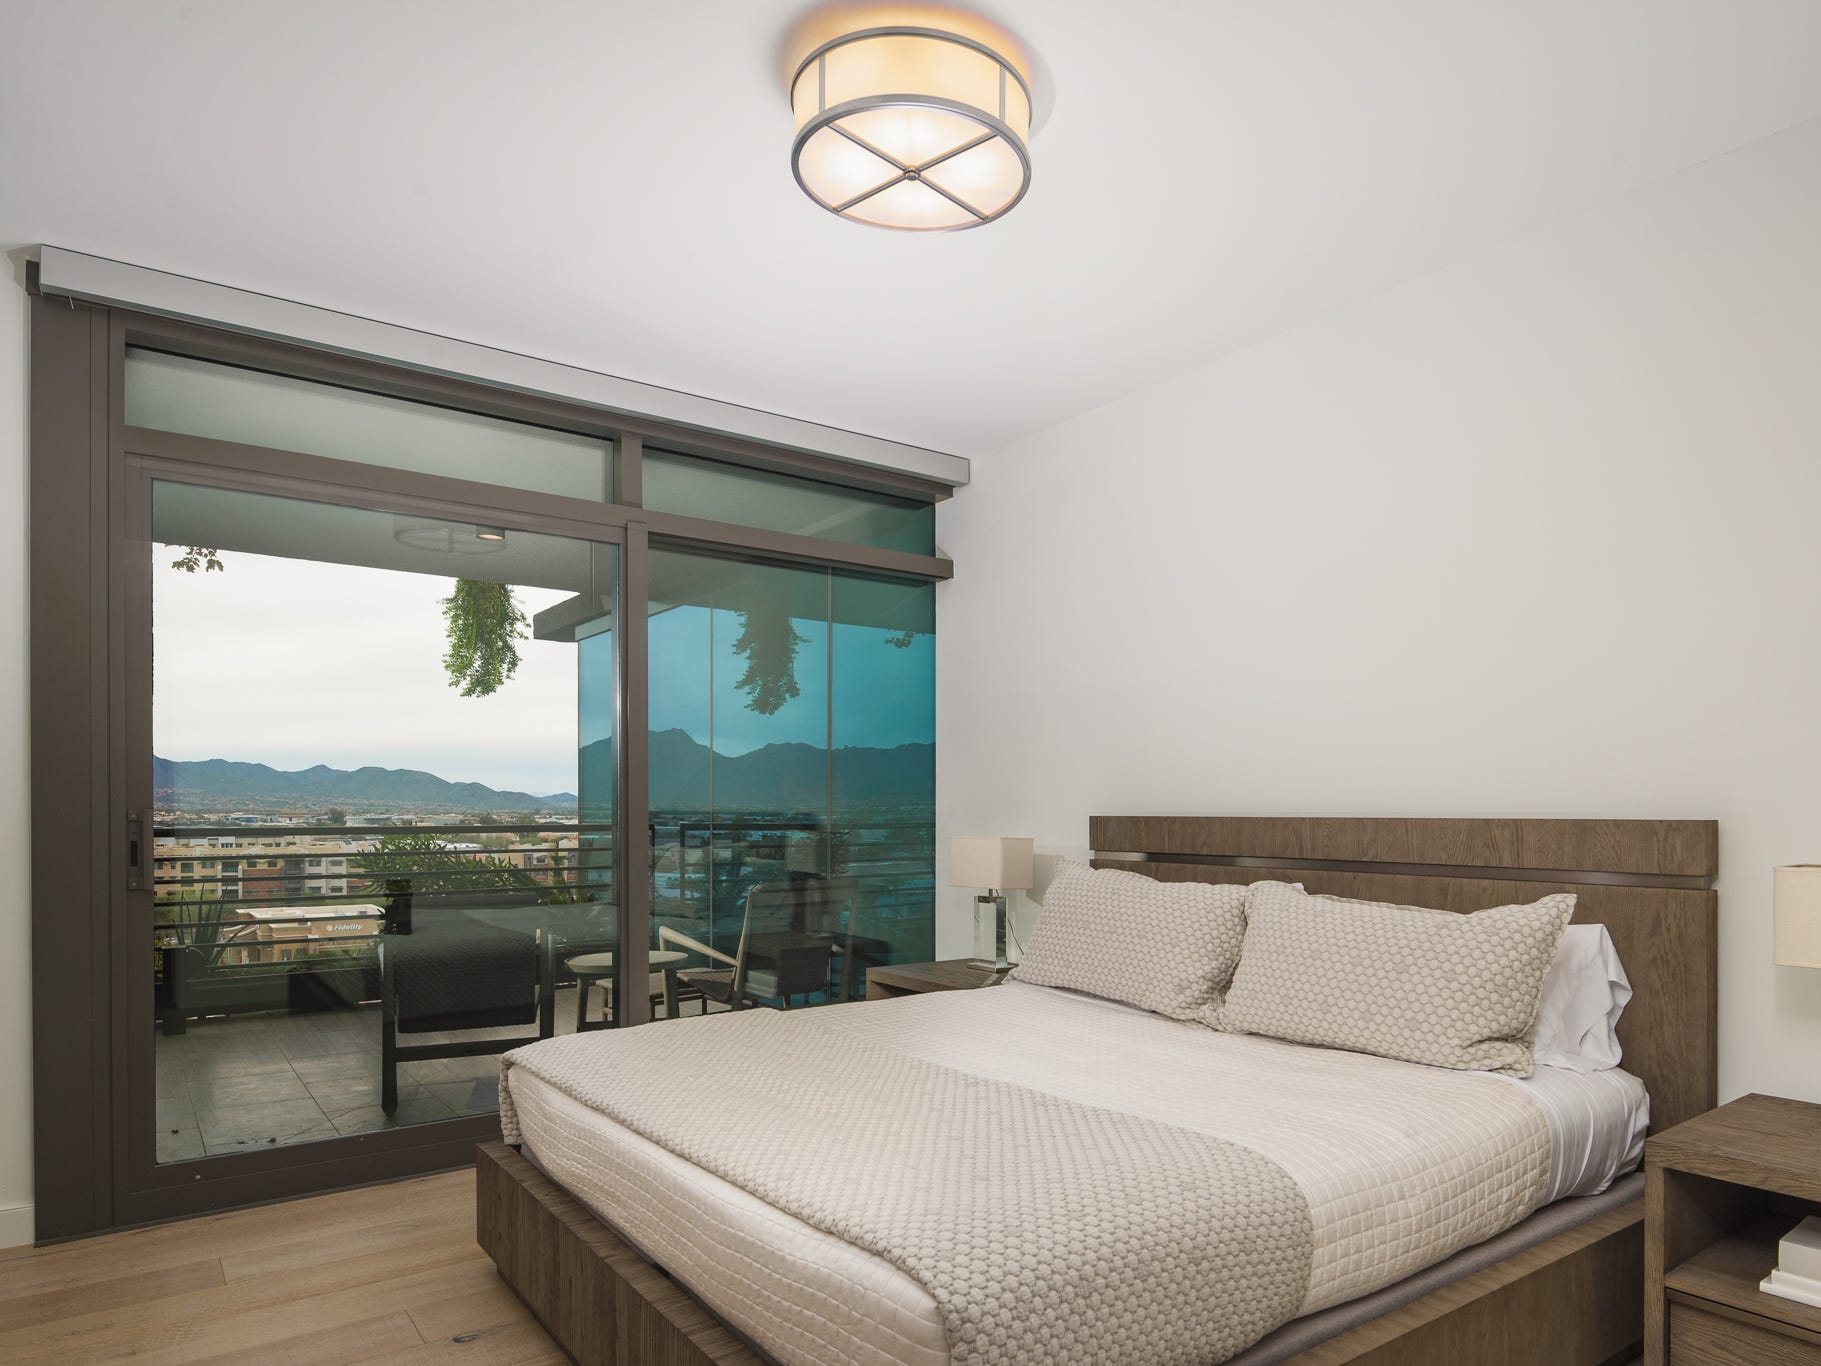 The rooms are awash with daylight thanks to floor-to-ceiling windows.